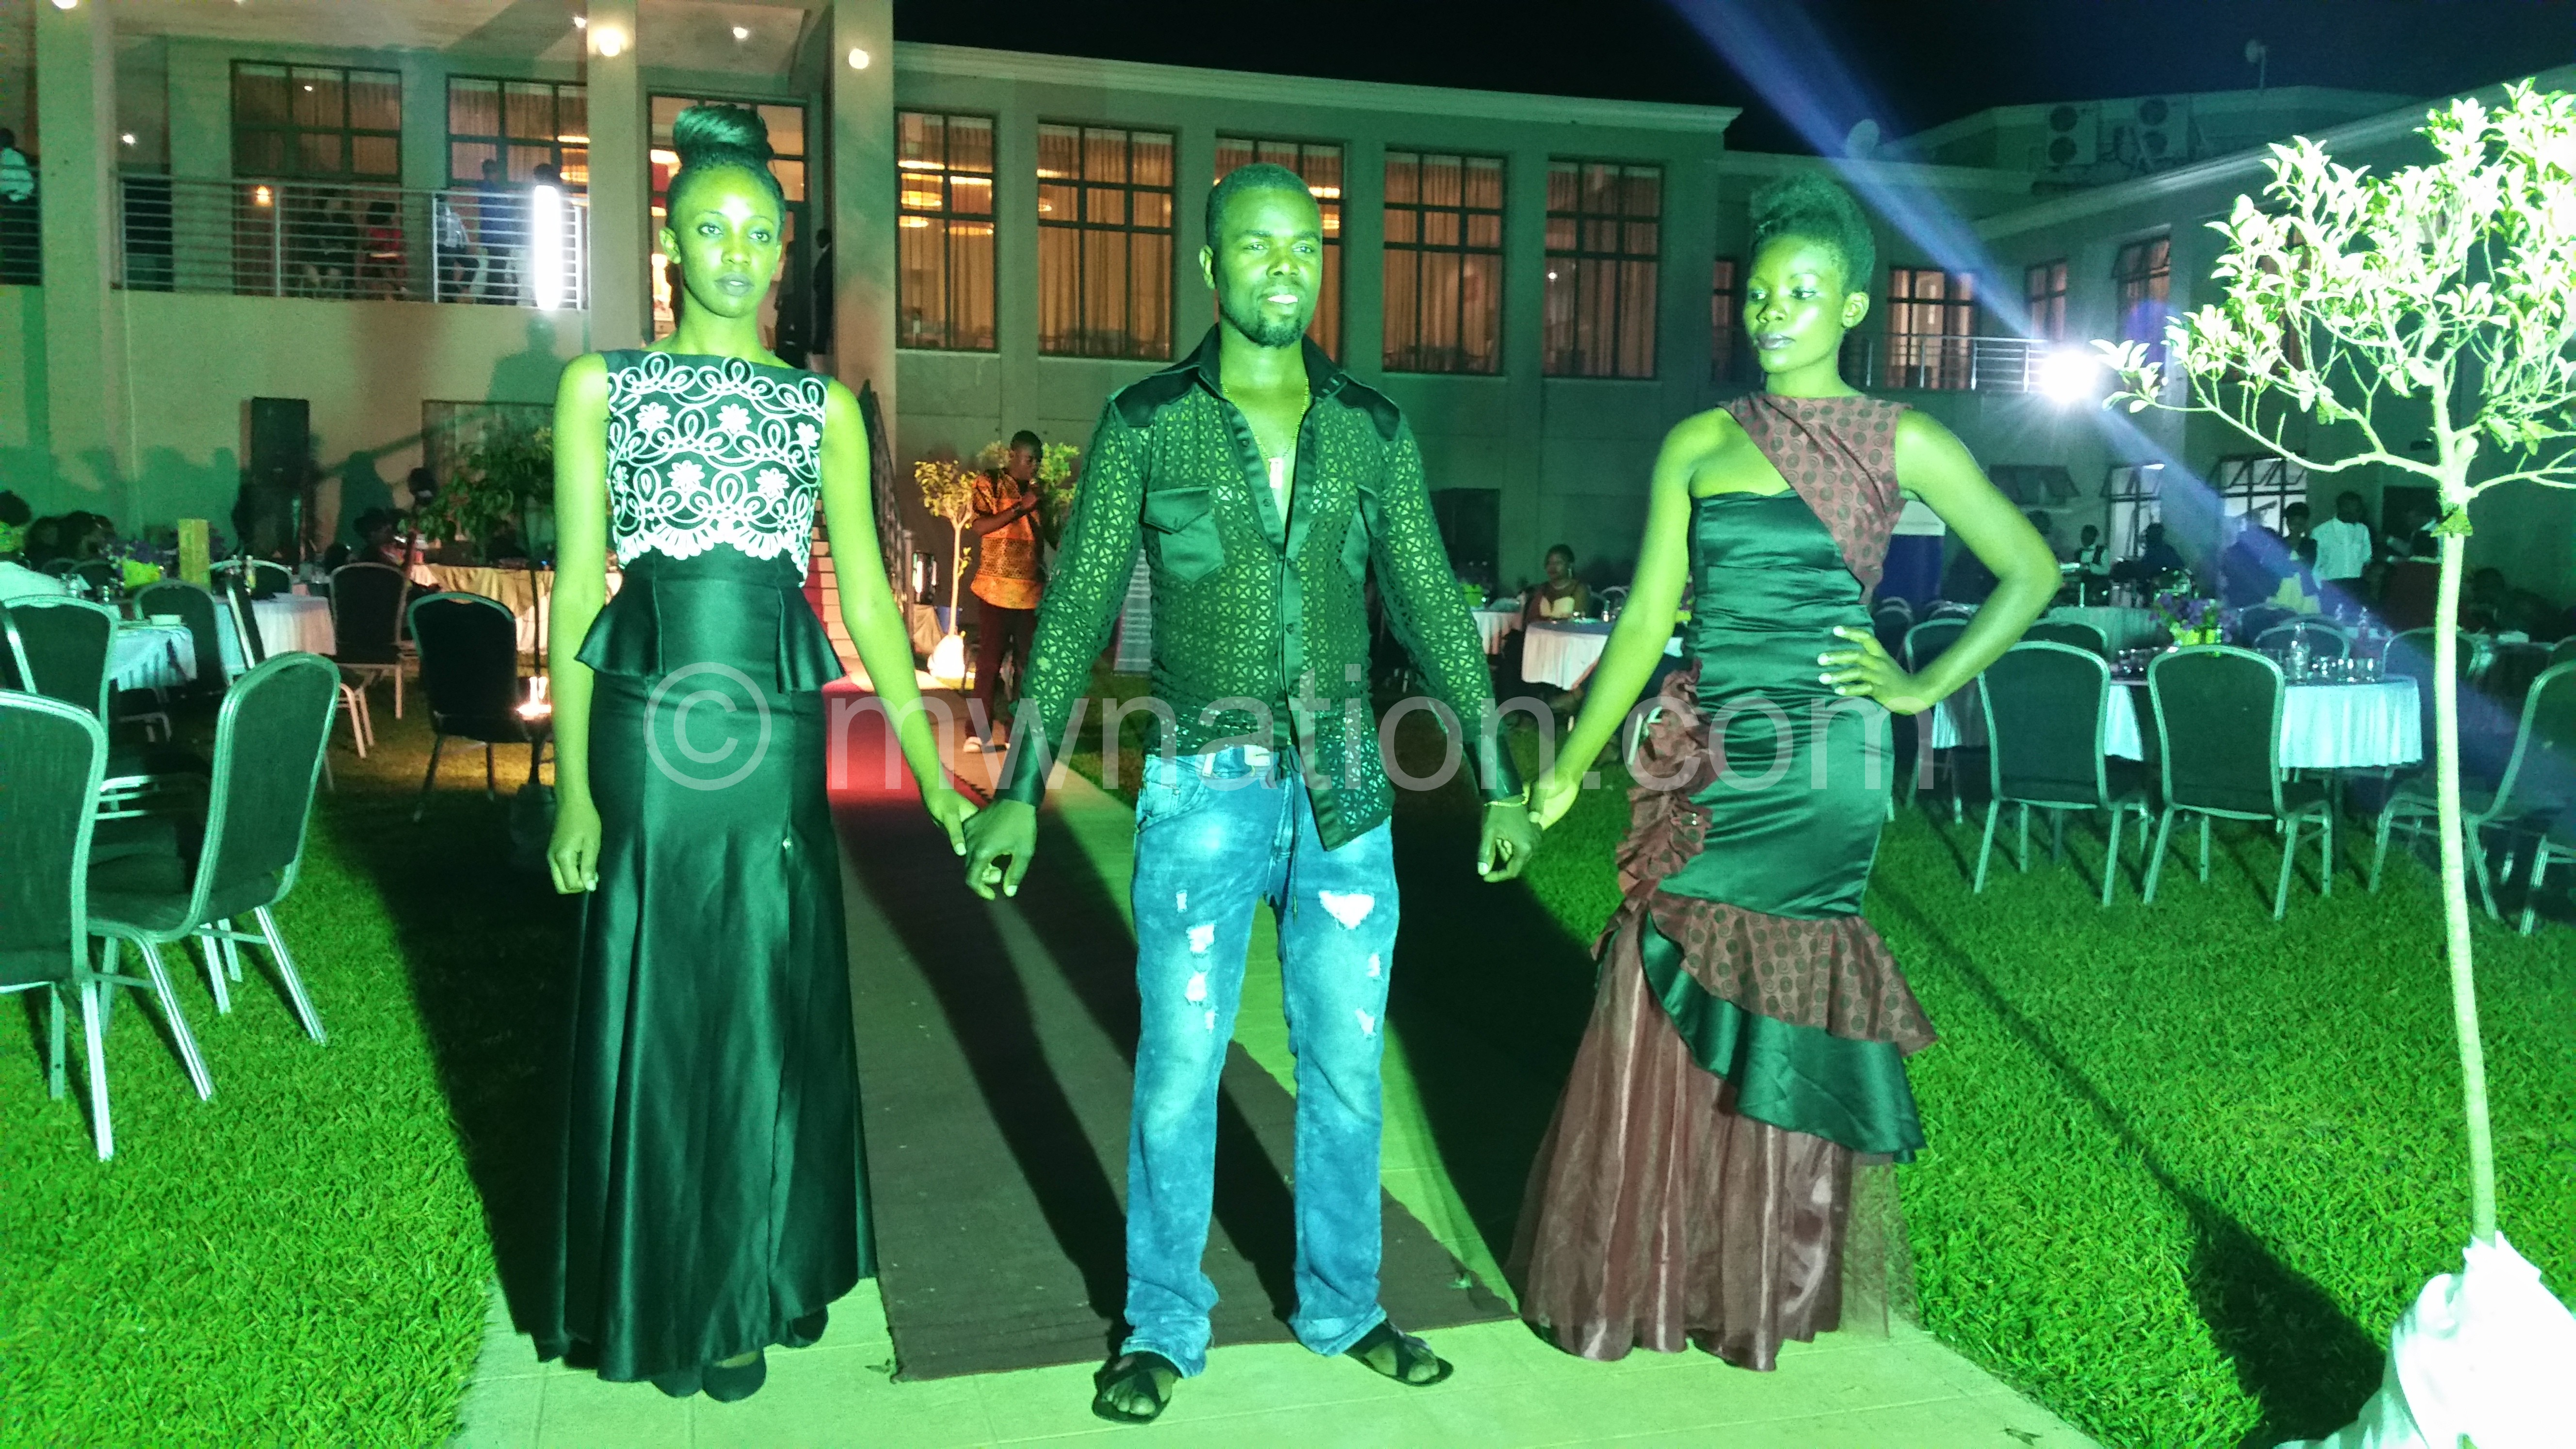 Clemoh Sato (C) poses with models wearing his designs at the Mzuzu Fashion Week